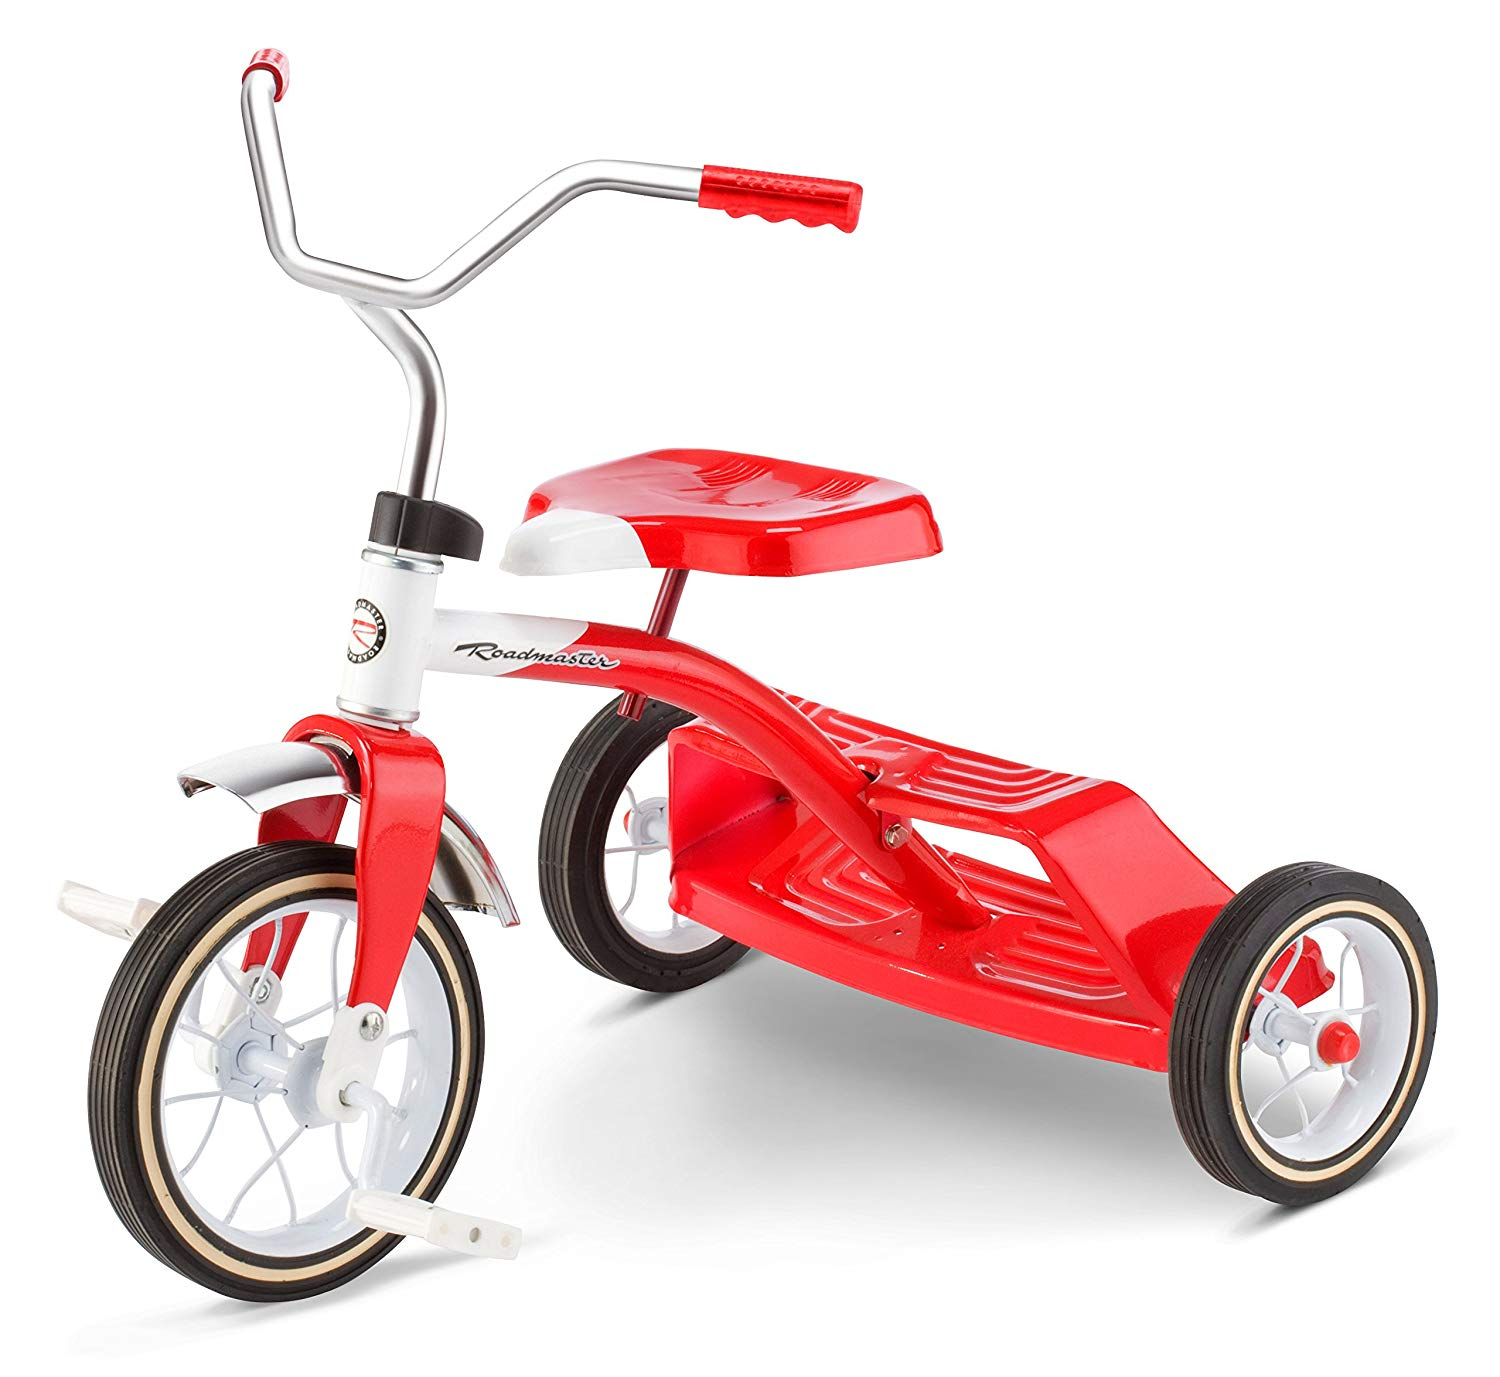 Roadmaster Duo Deck 10-Inch Trike   Tricycles For Kid